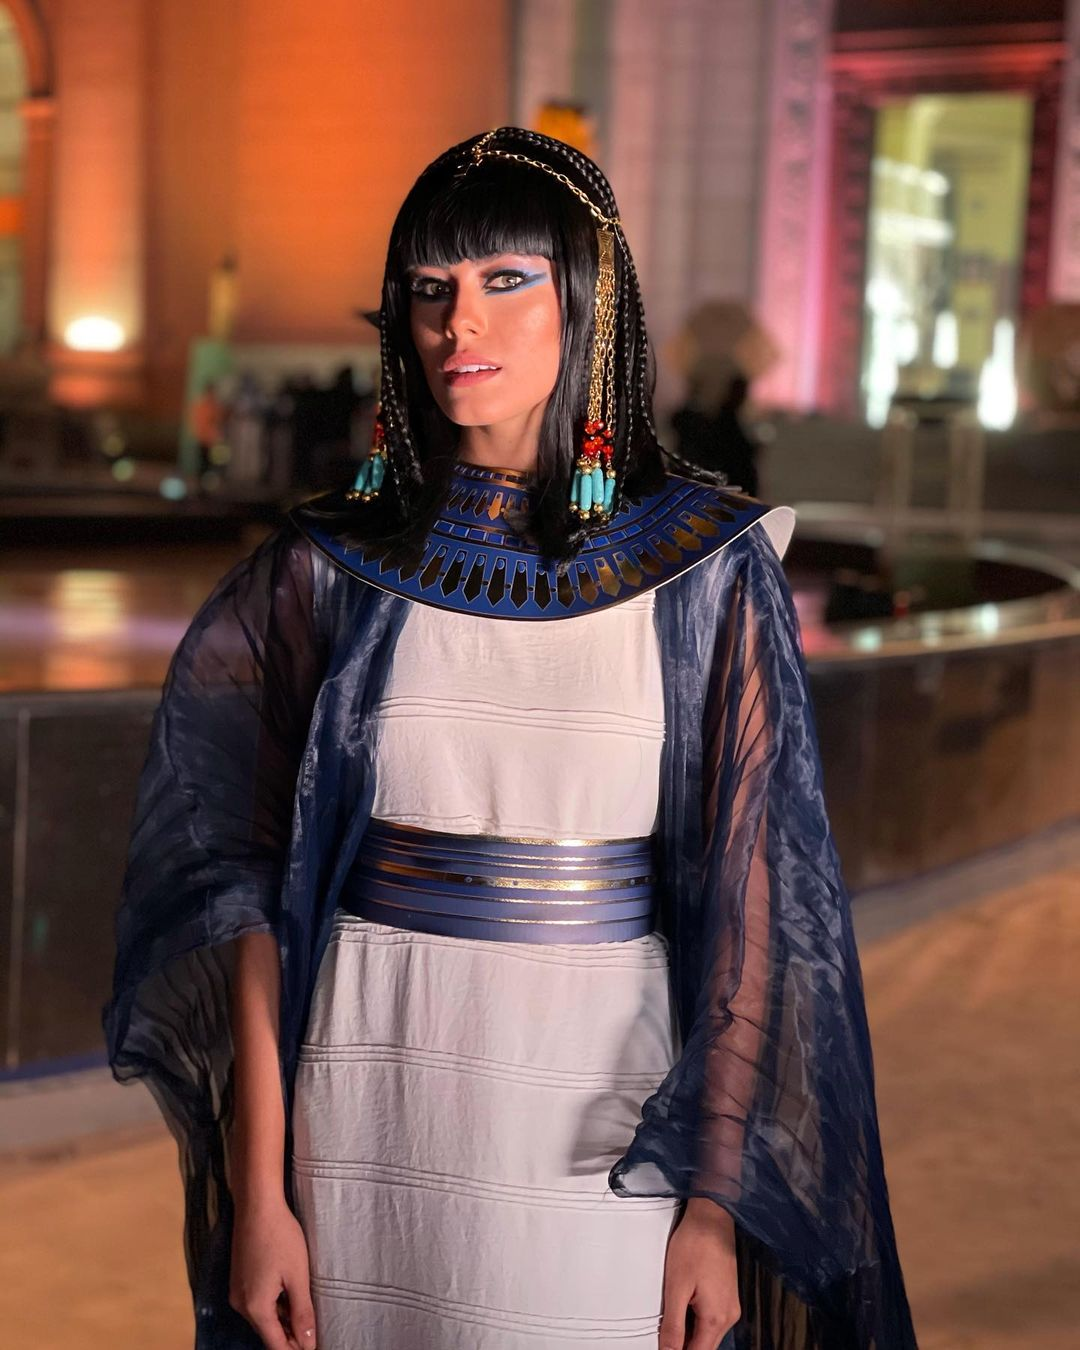 All you need to know about Miral Mahilian after she leads the Parade of Royal Mummies